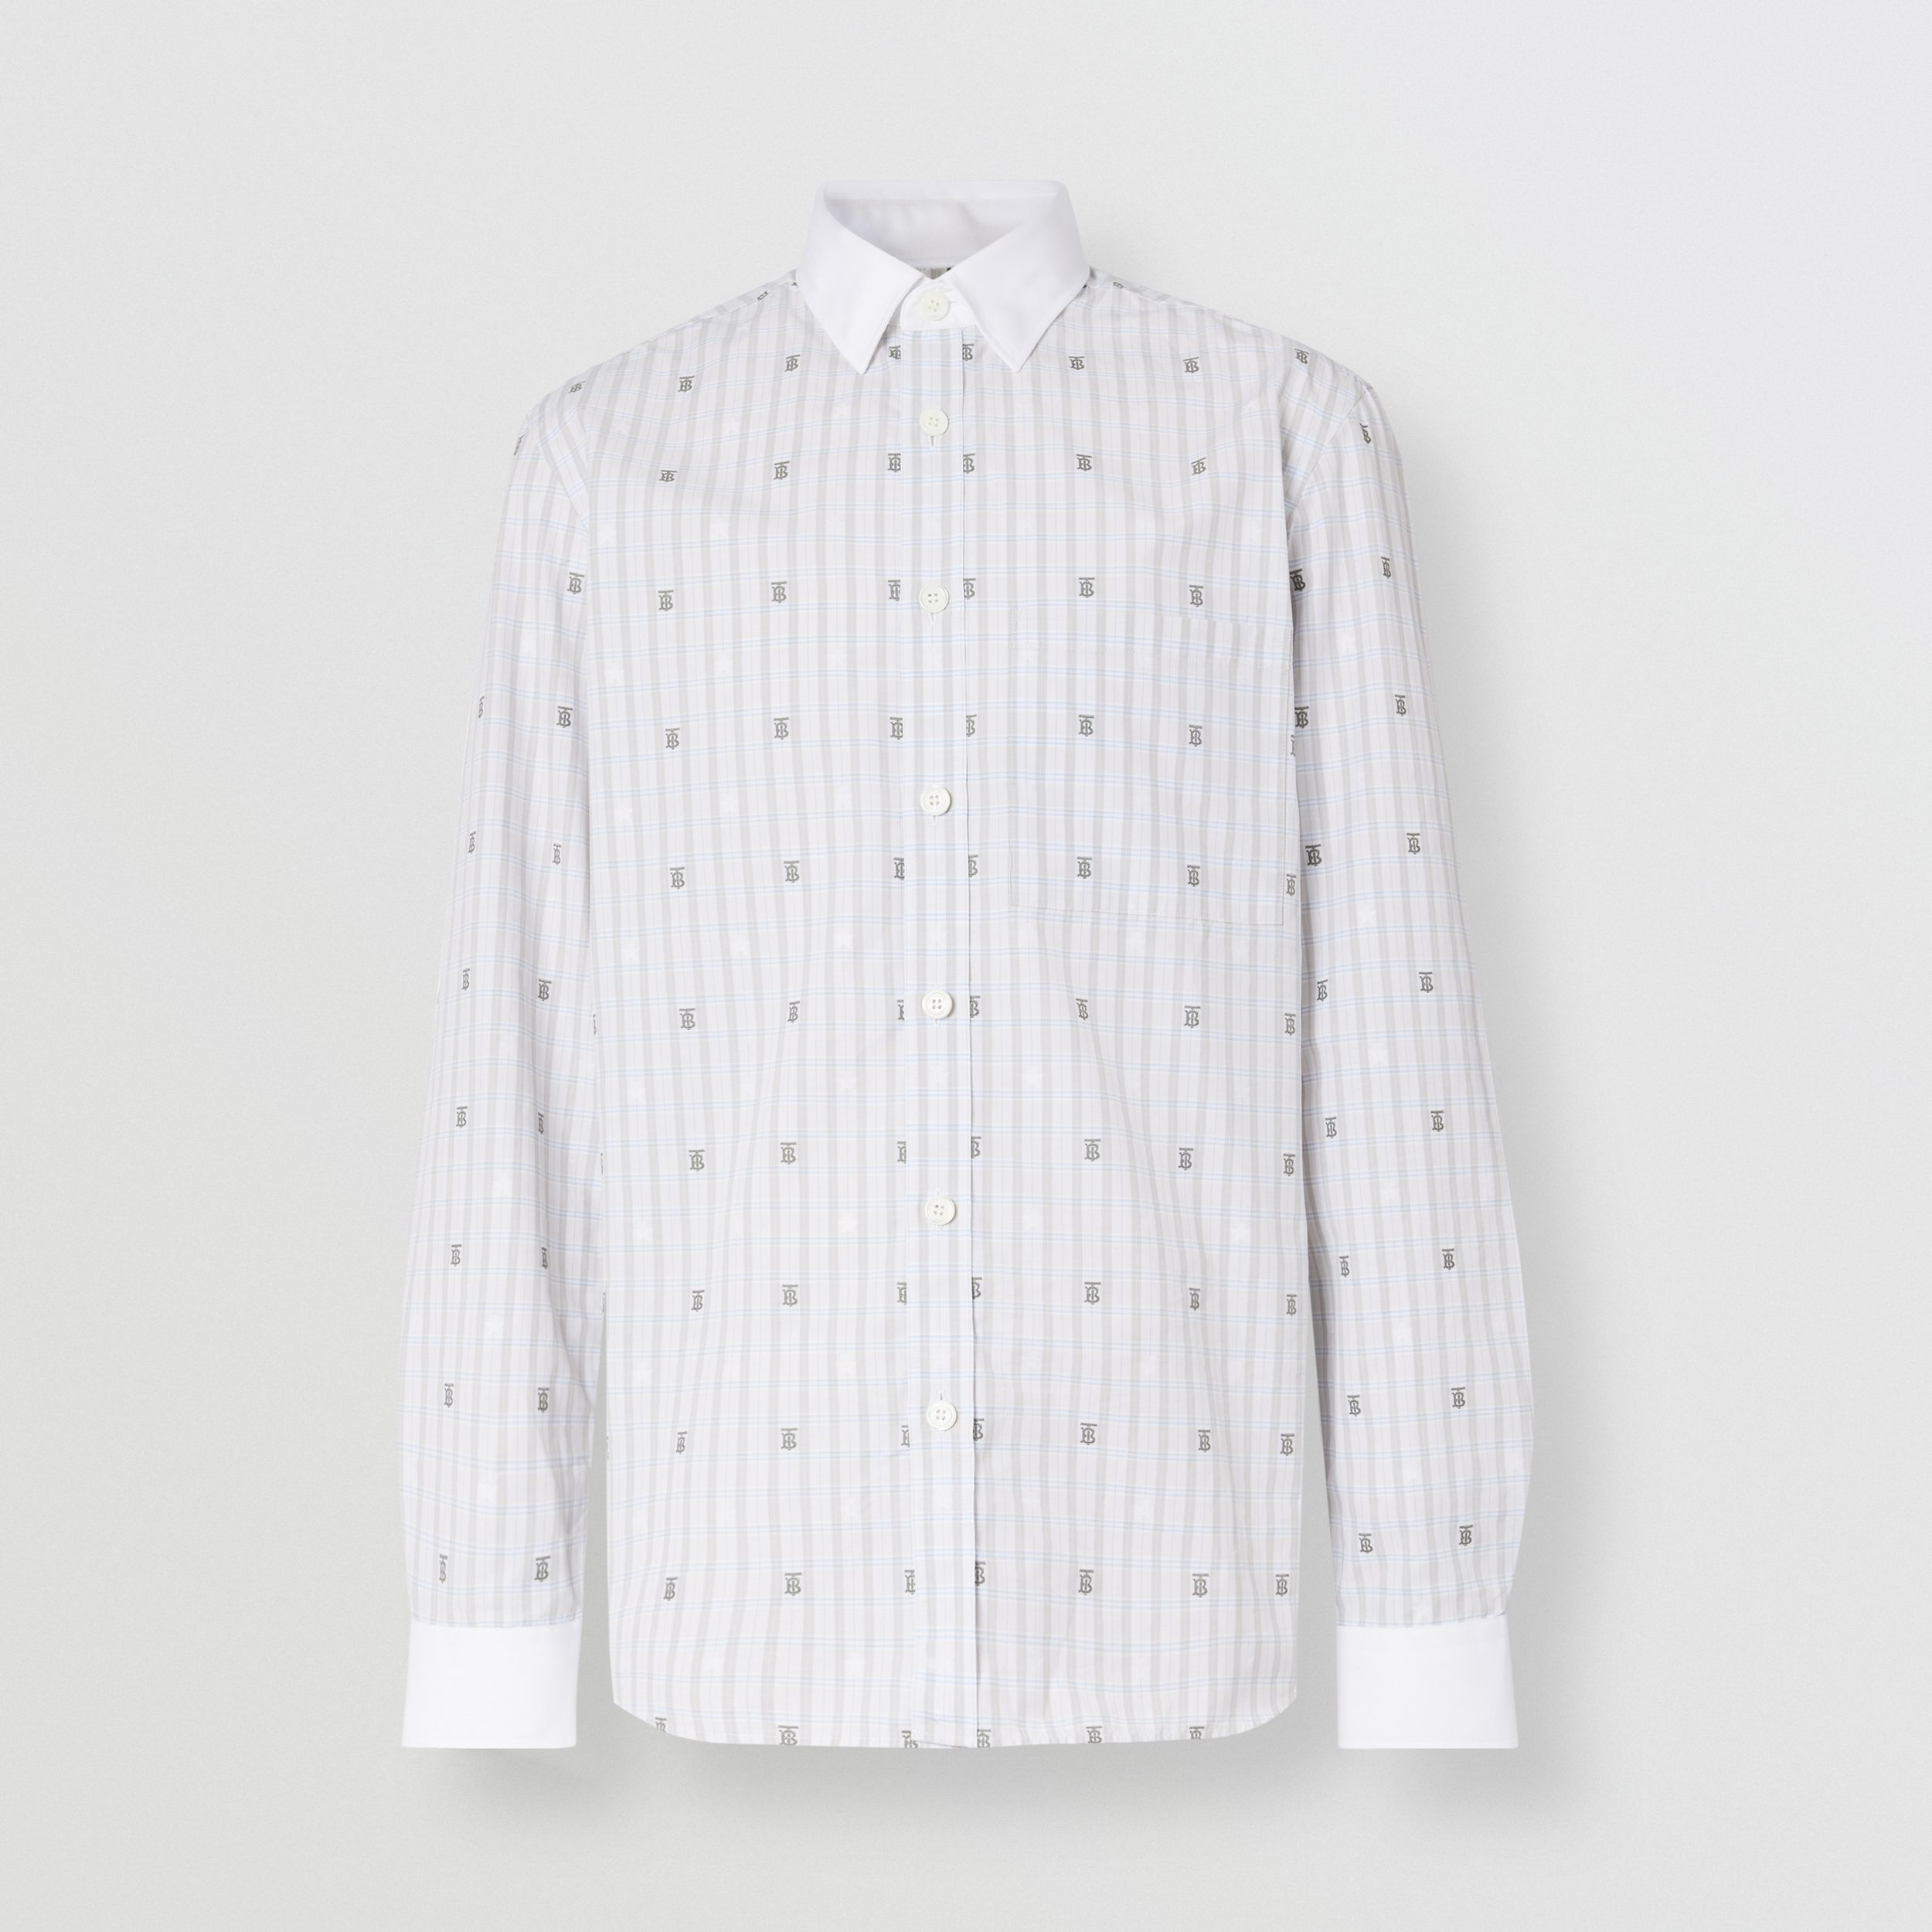 Slim Fit Star and Monogram Motif Check Cotton Shirt in Light Grey - Men | Burberry - 4